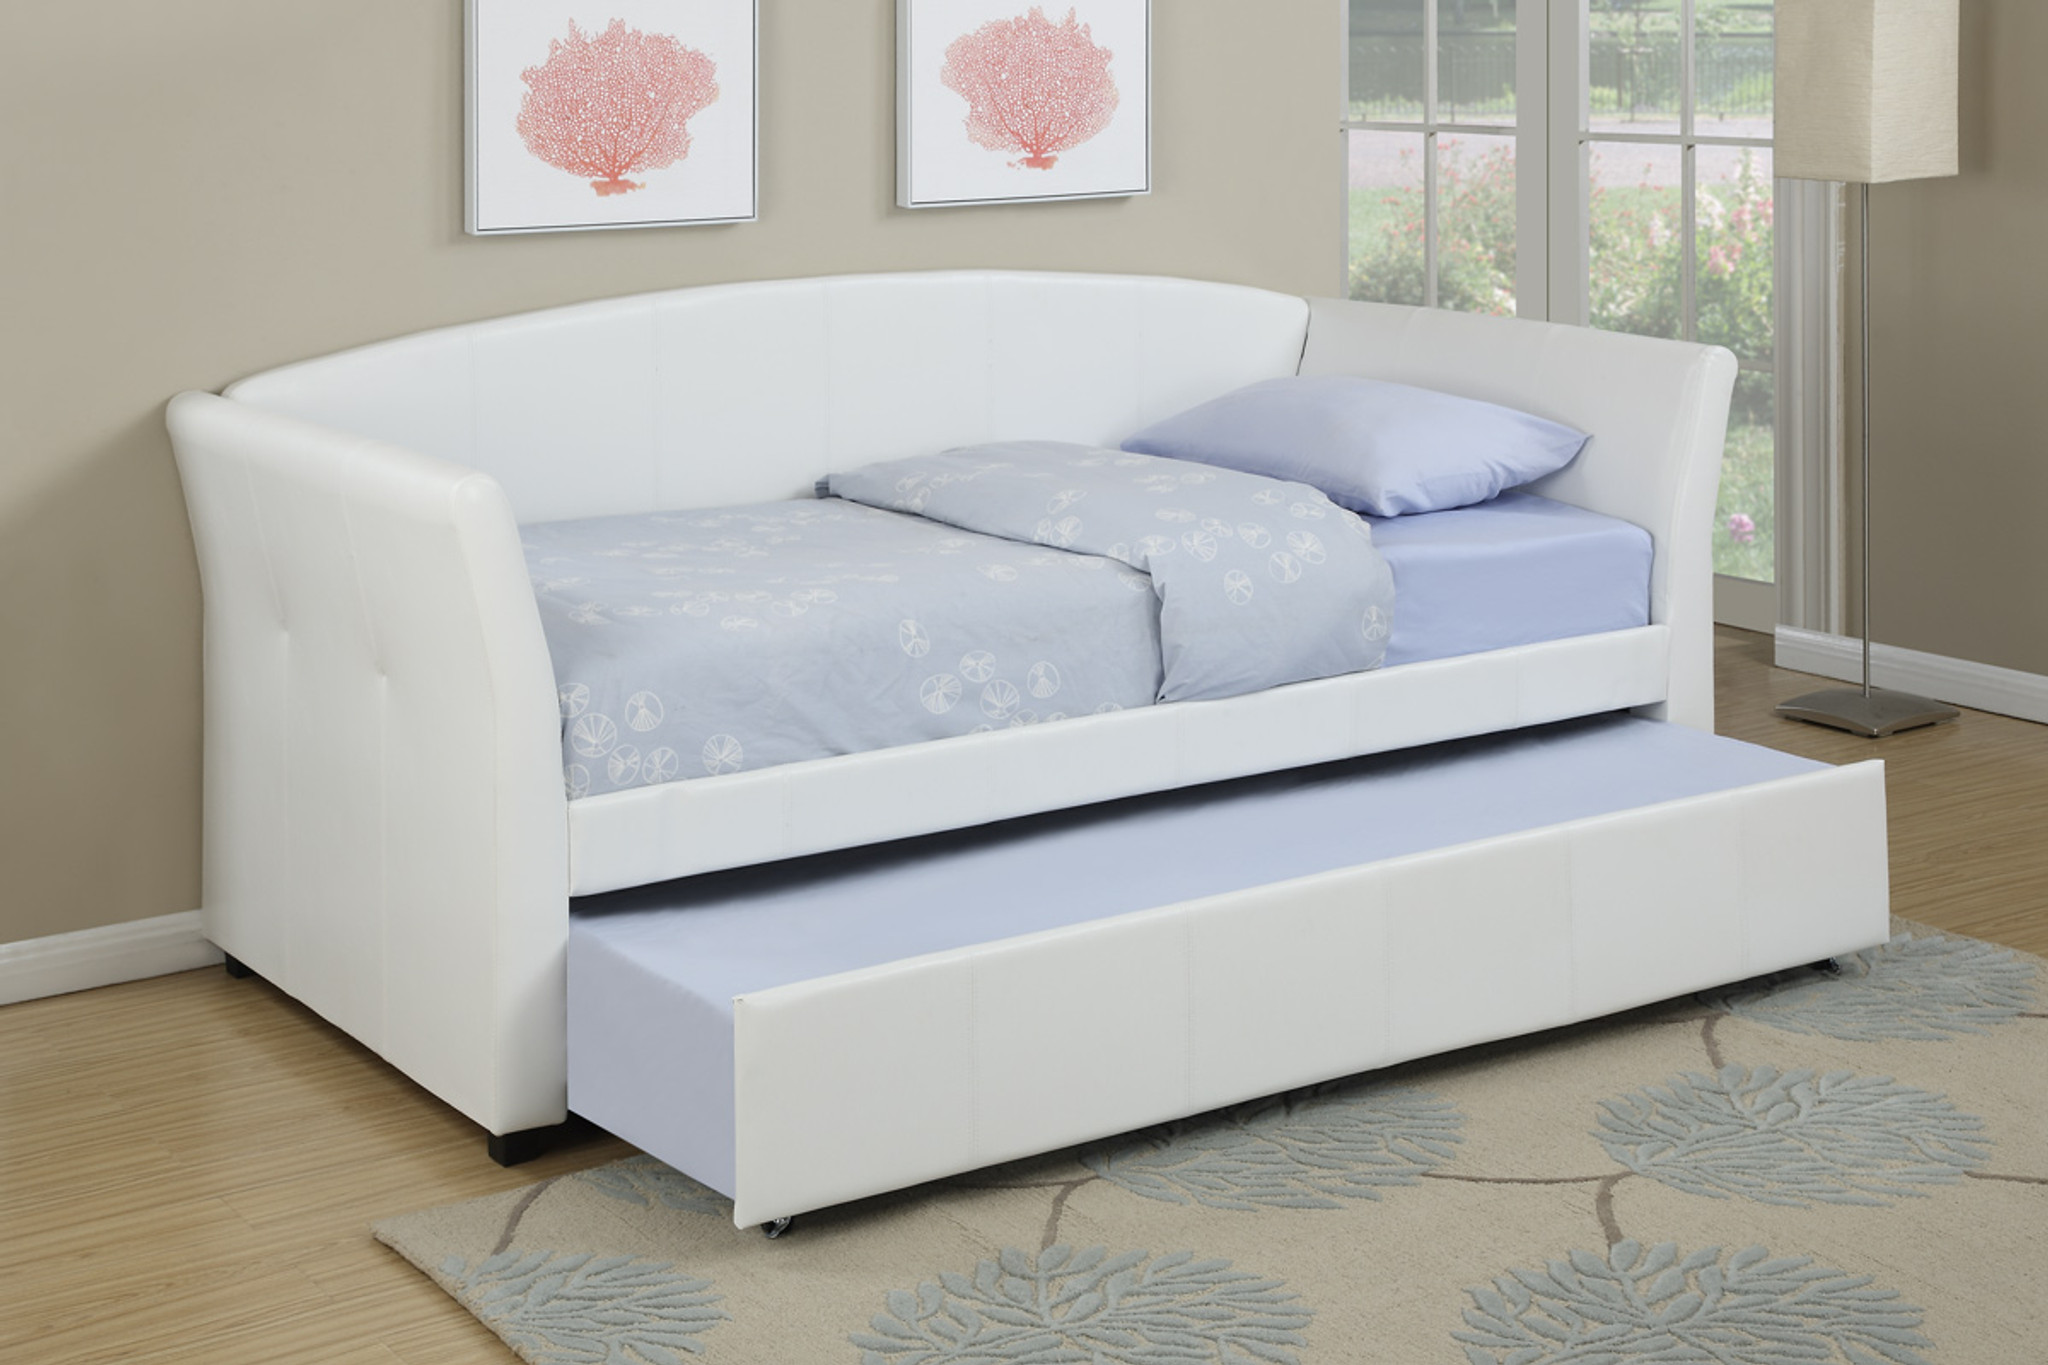 - KASSA MALL HOME FURNITURE - F9259 - TWIN BED DAYBED W/TRUNDLE